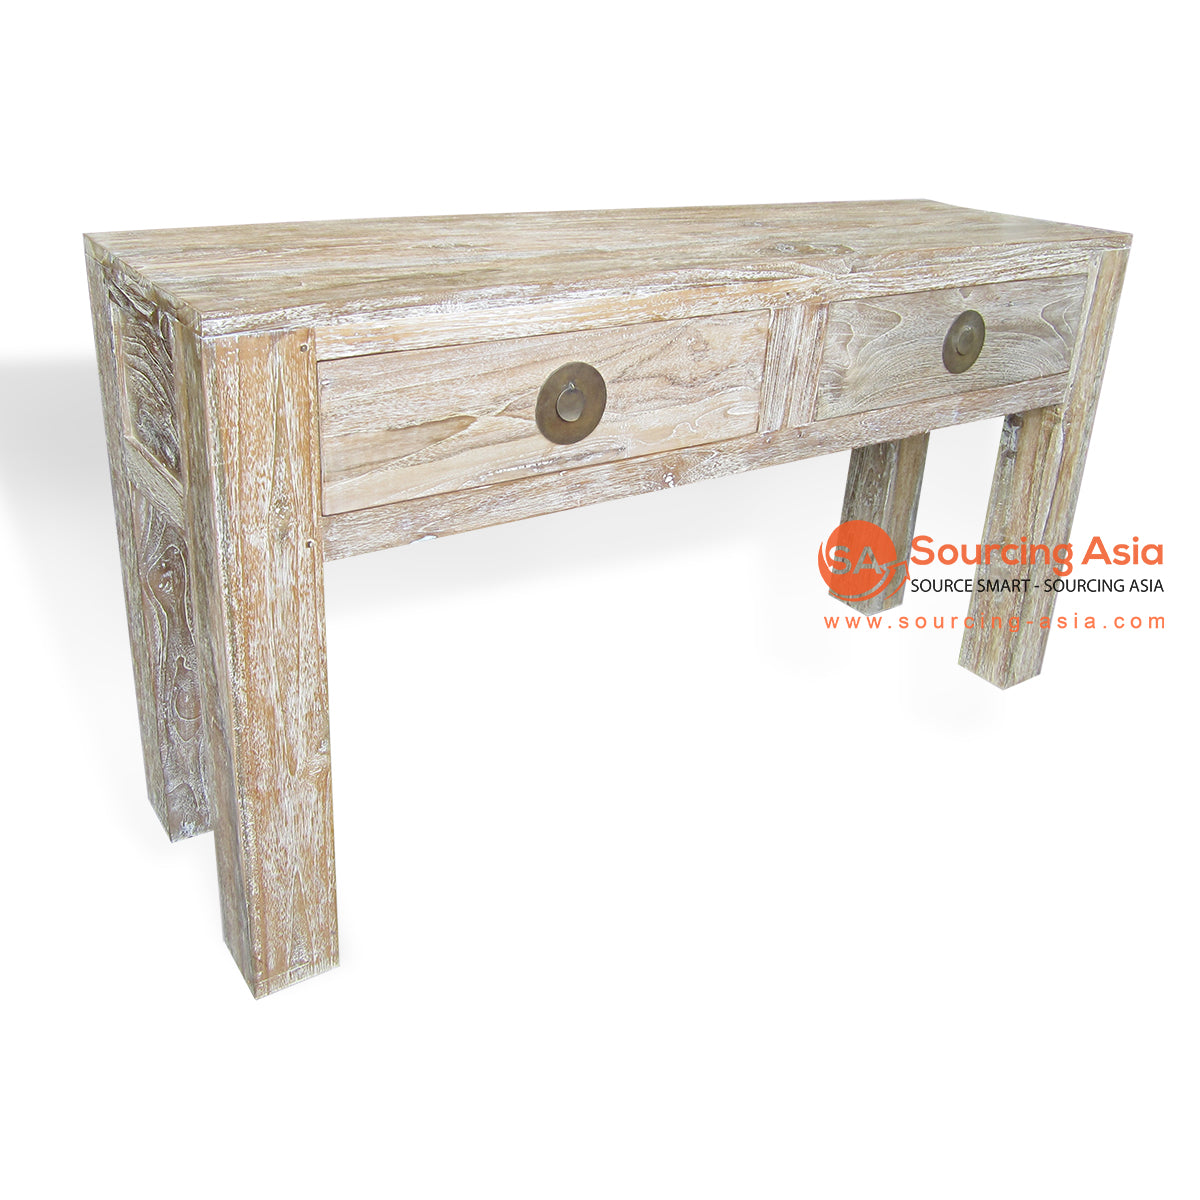 KYT10054-1 CONSOLE TABLE